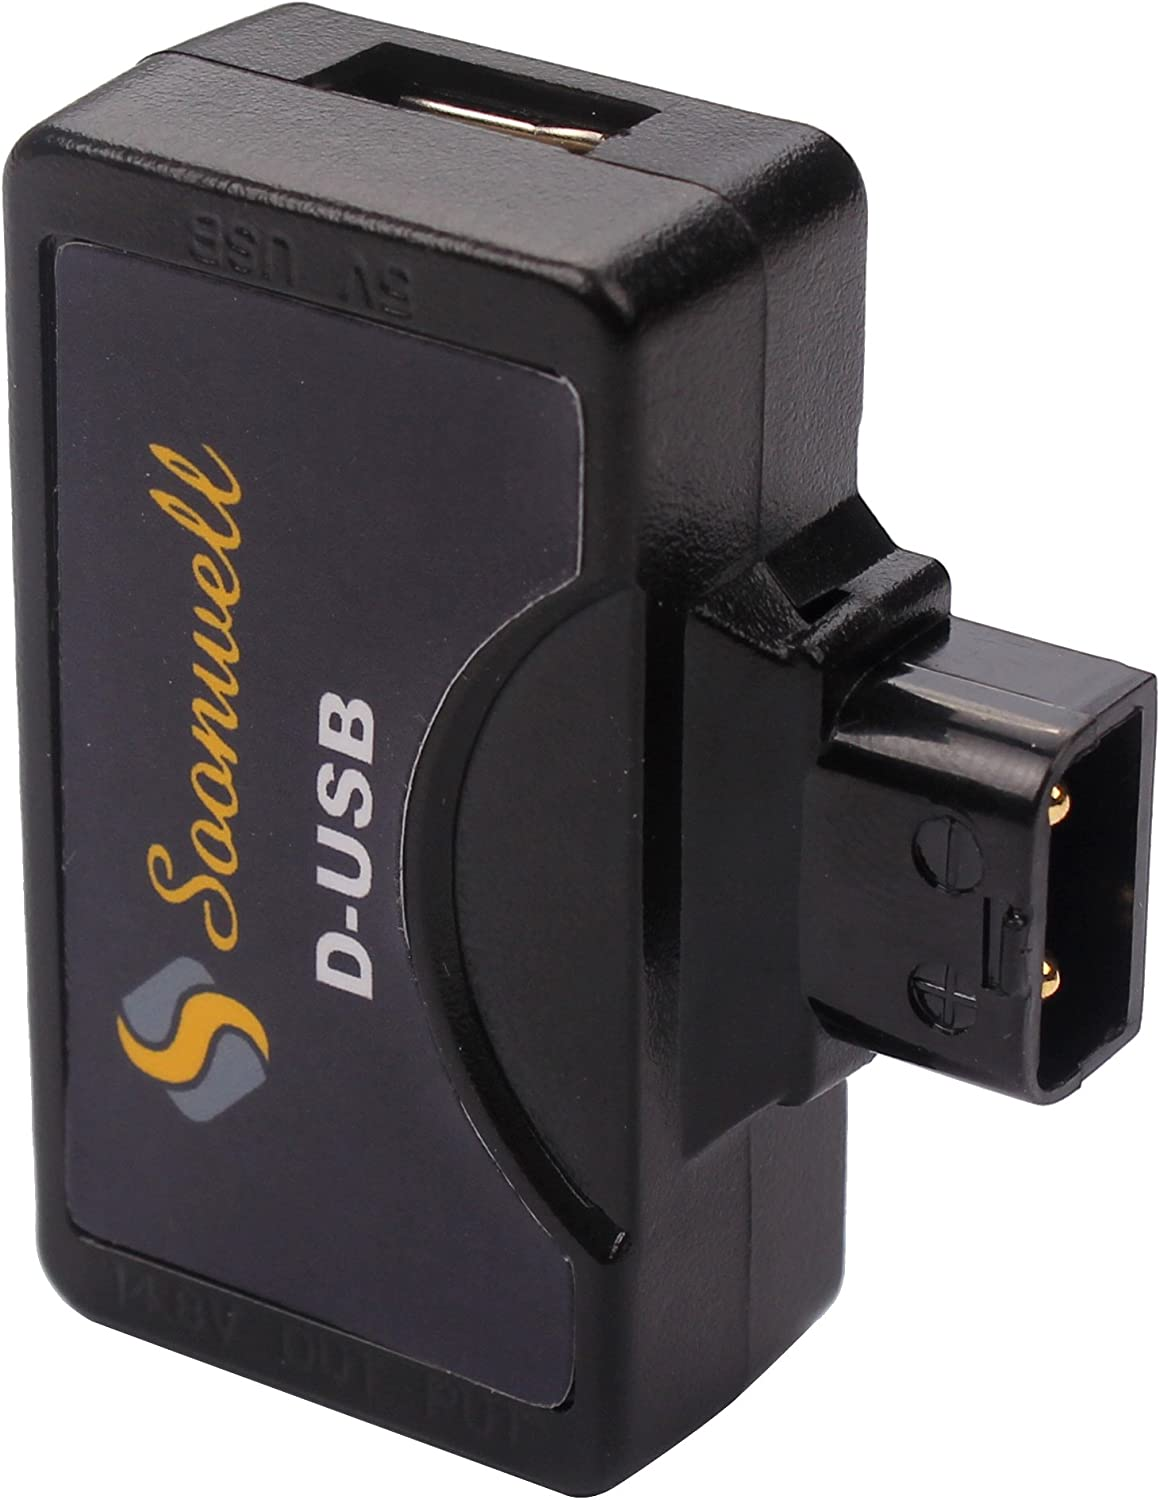 SOONWELL D-Tap P-Tap to 5V USB Adapter Connector for Anton//Sony V-Mount Camera Battery